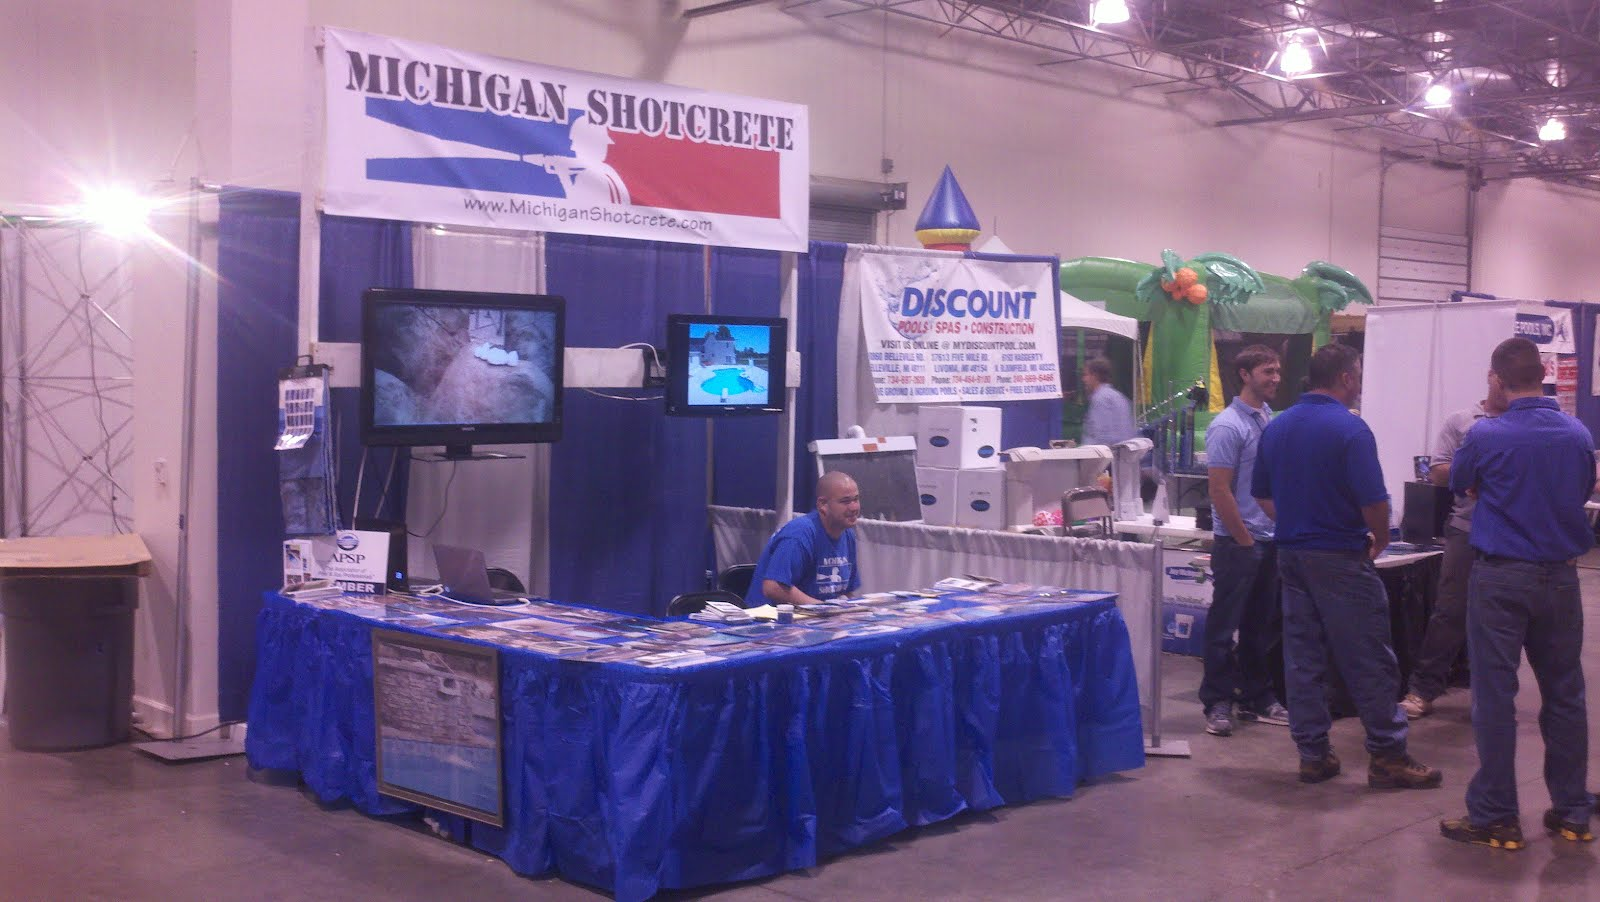 Michigan shotcrete gunite pool builder for Pool show michigan